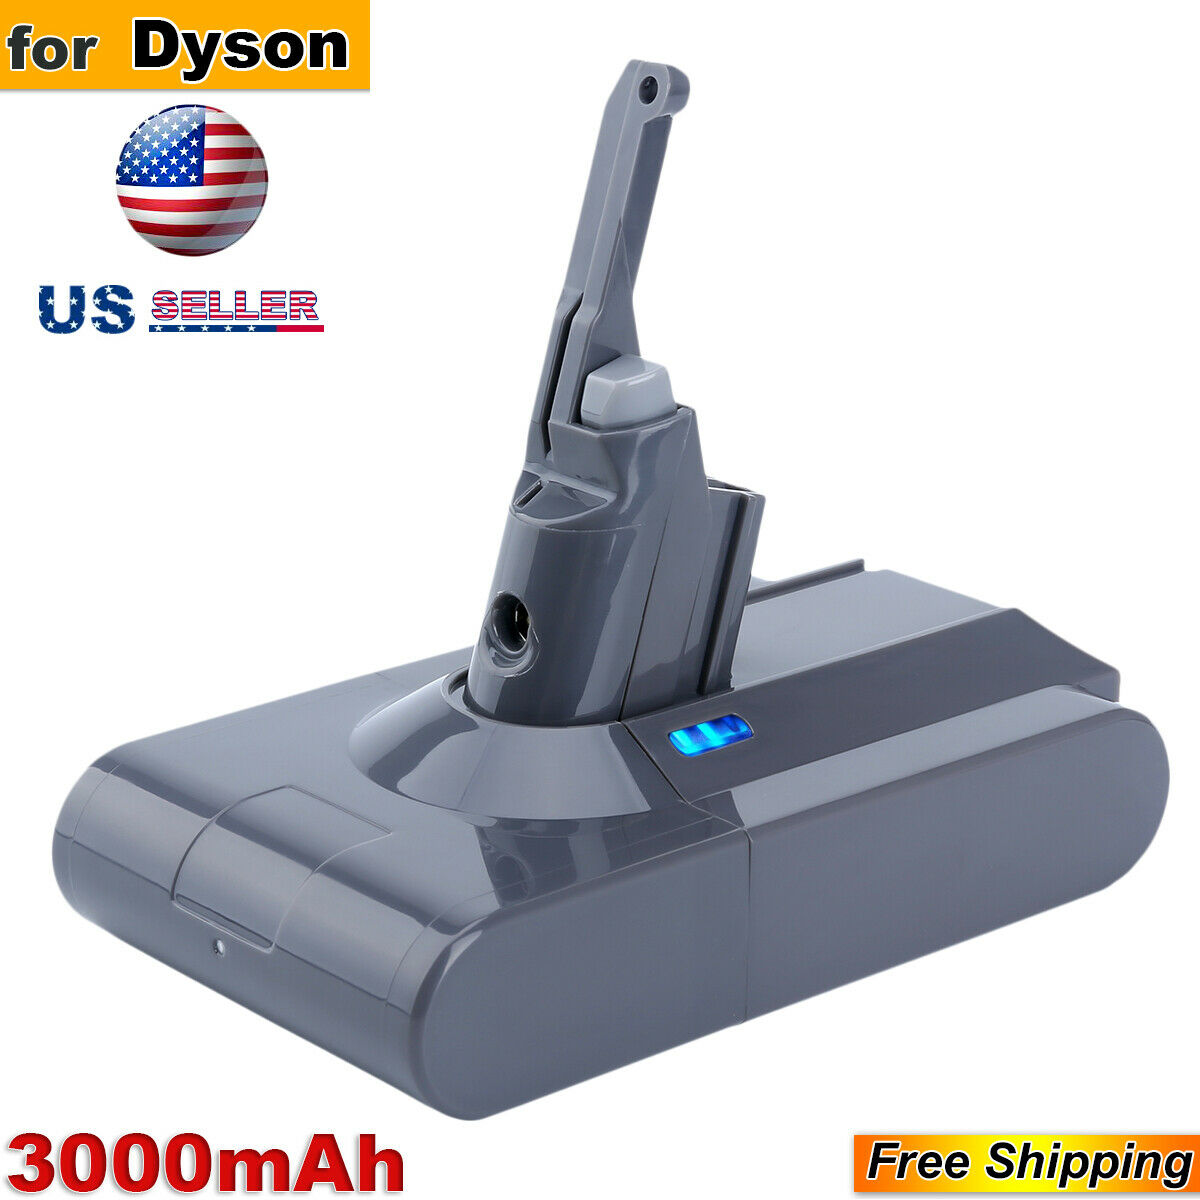 New 21.6V 3.0A Li-Ion Battery For Dyson V8 Absolute Handheld